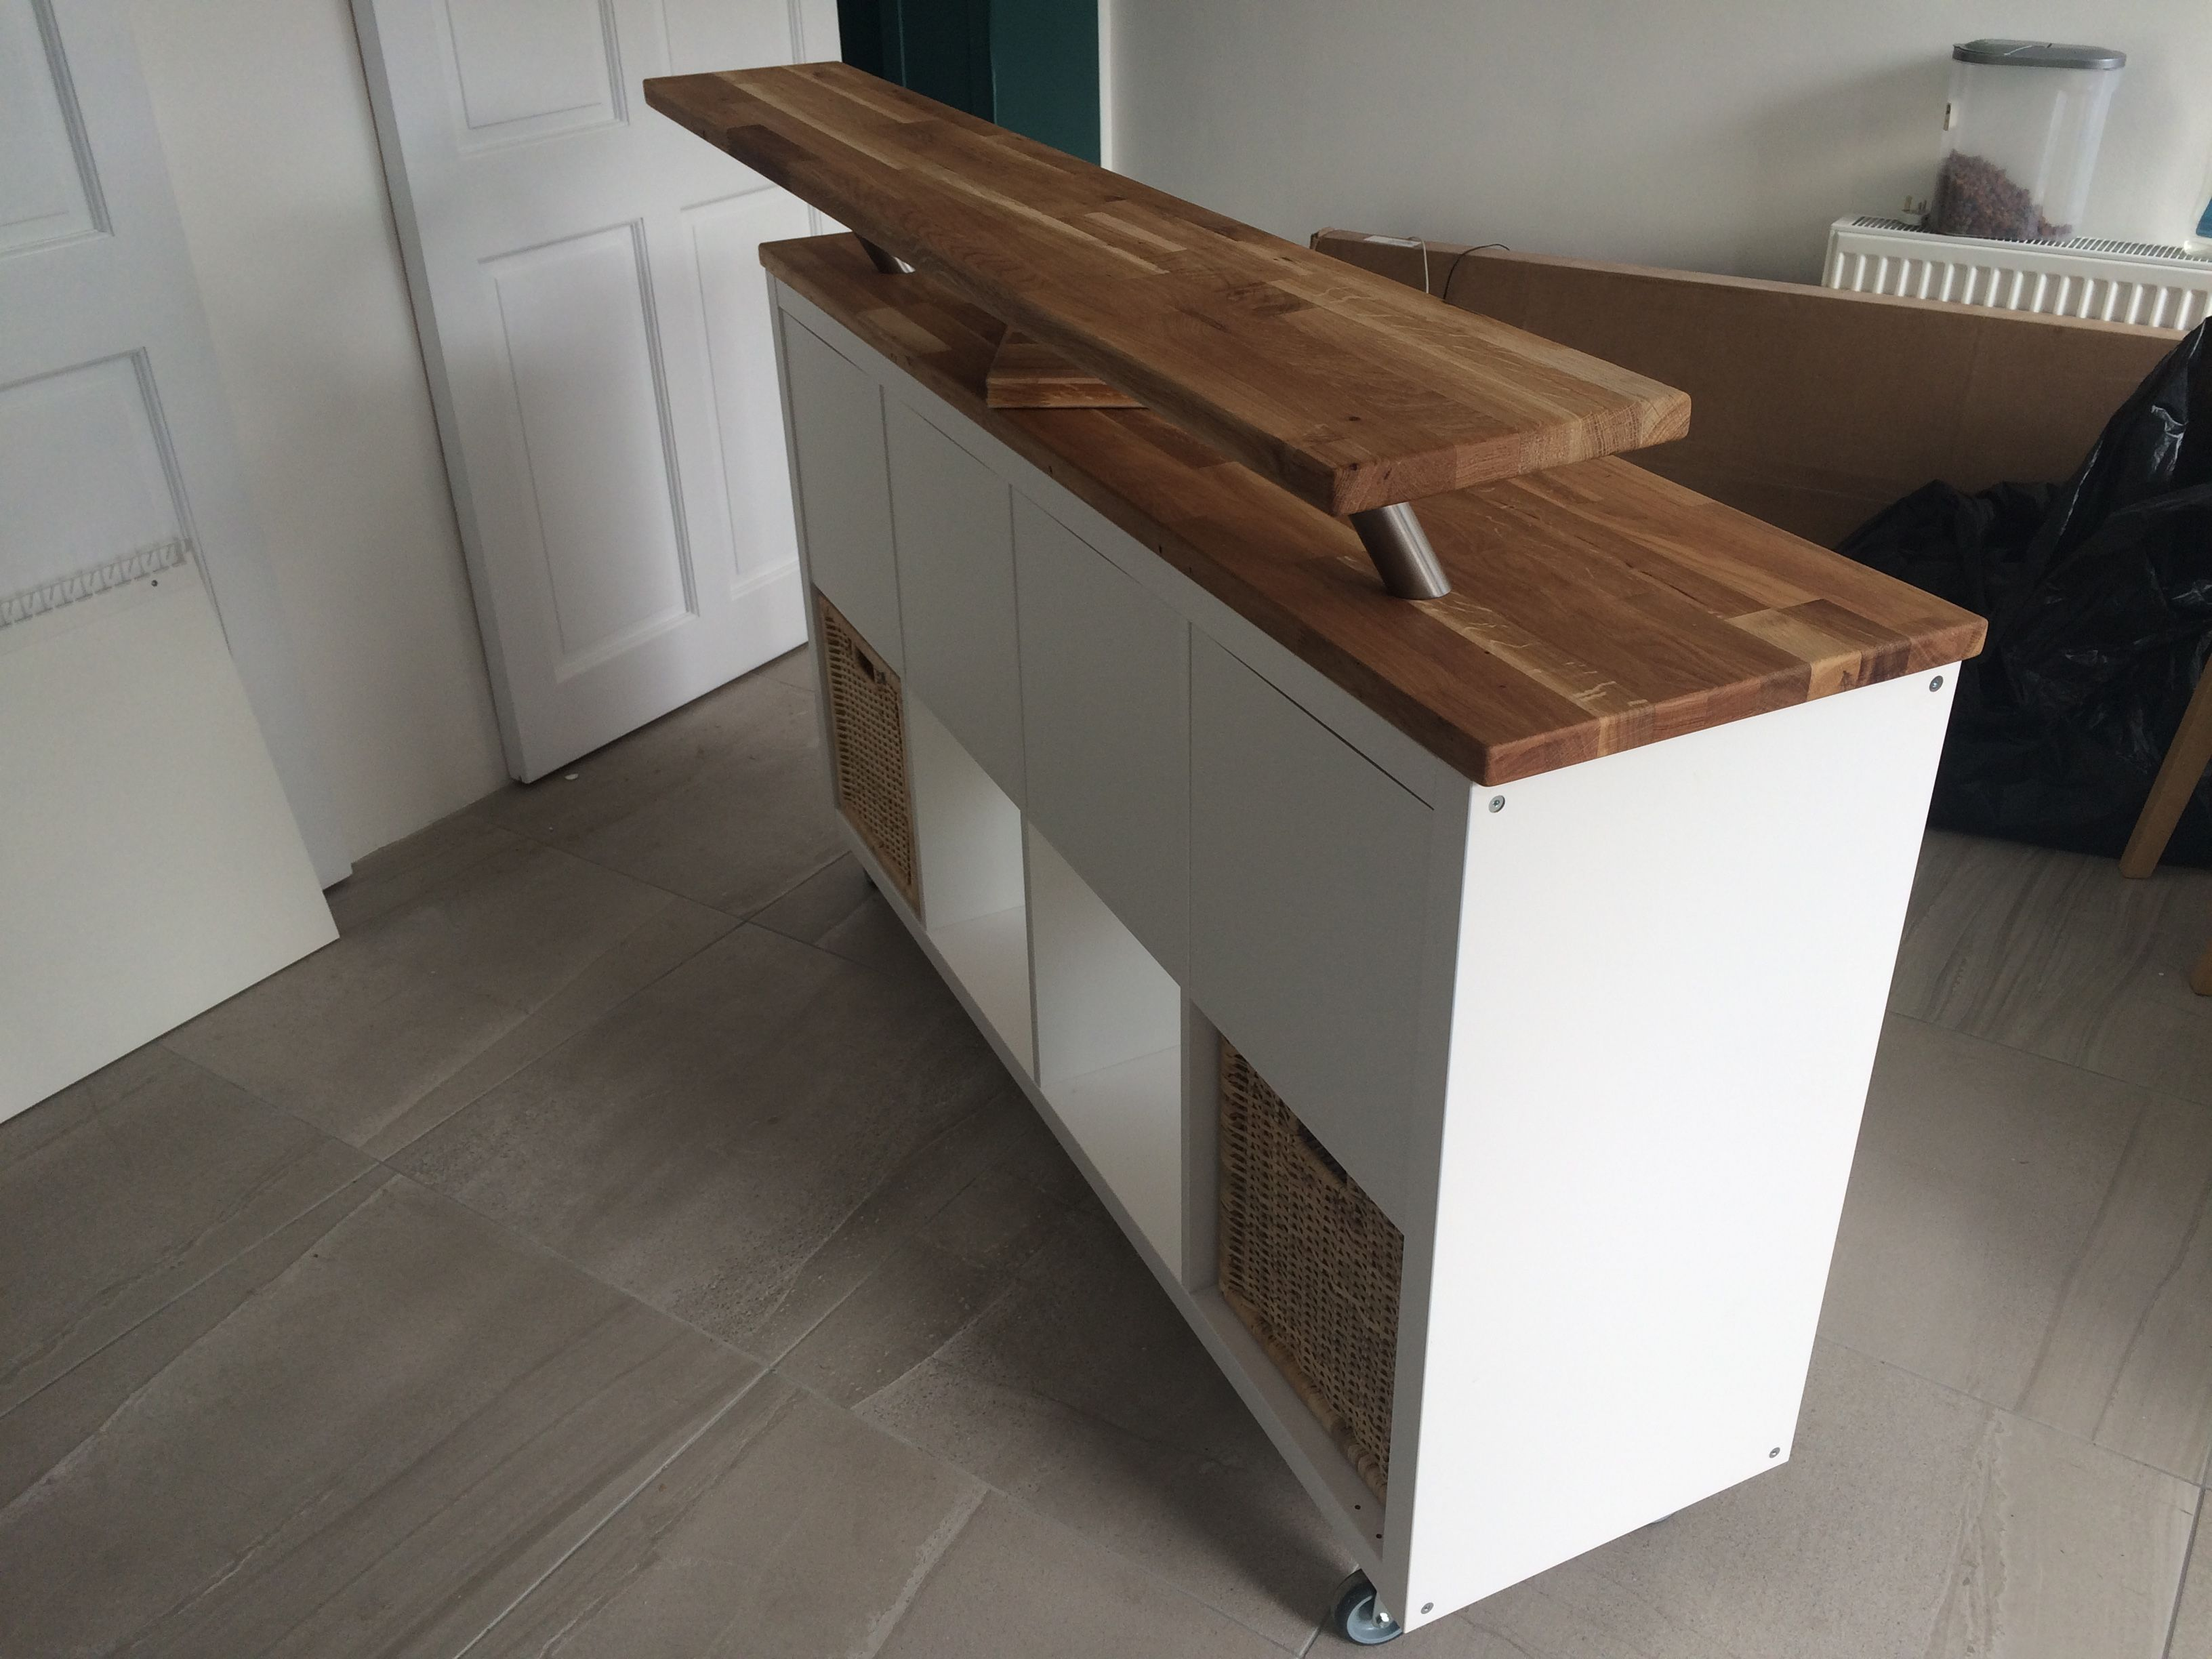 Ikea Küche Capita Ikea Hack Kitchen Island Breakfast Bar Kallax On Heavy Duty